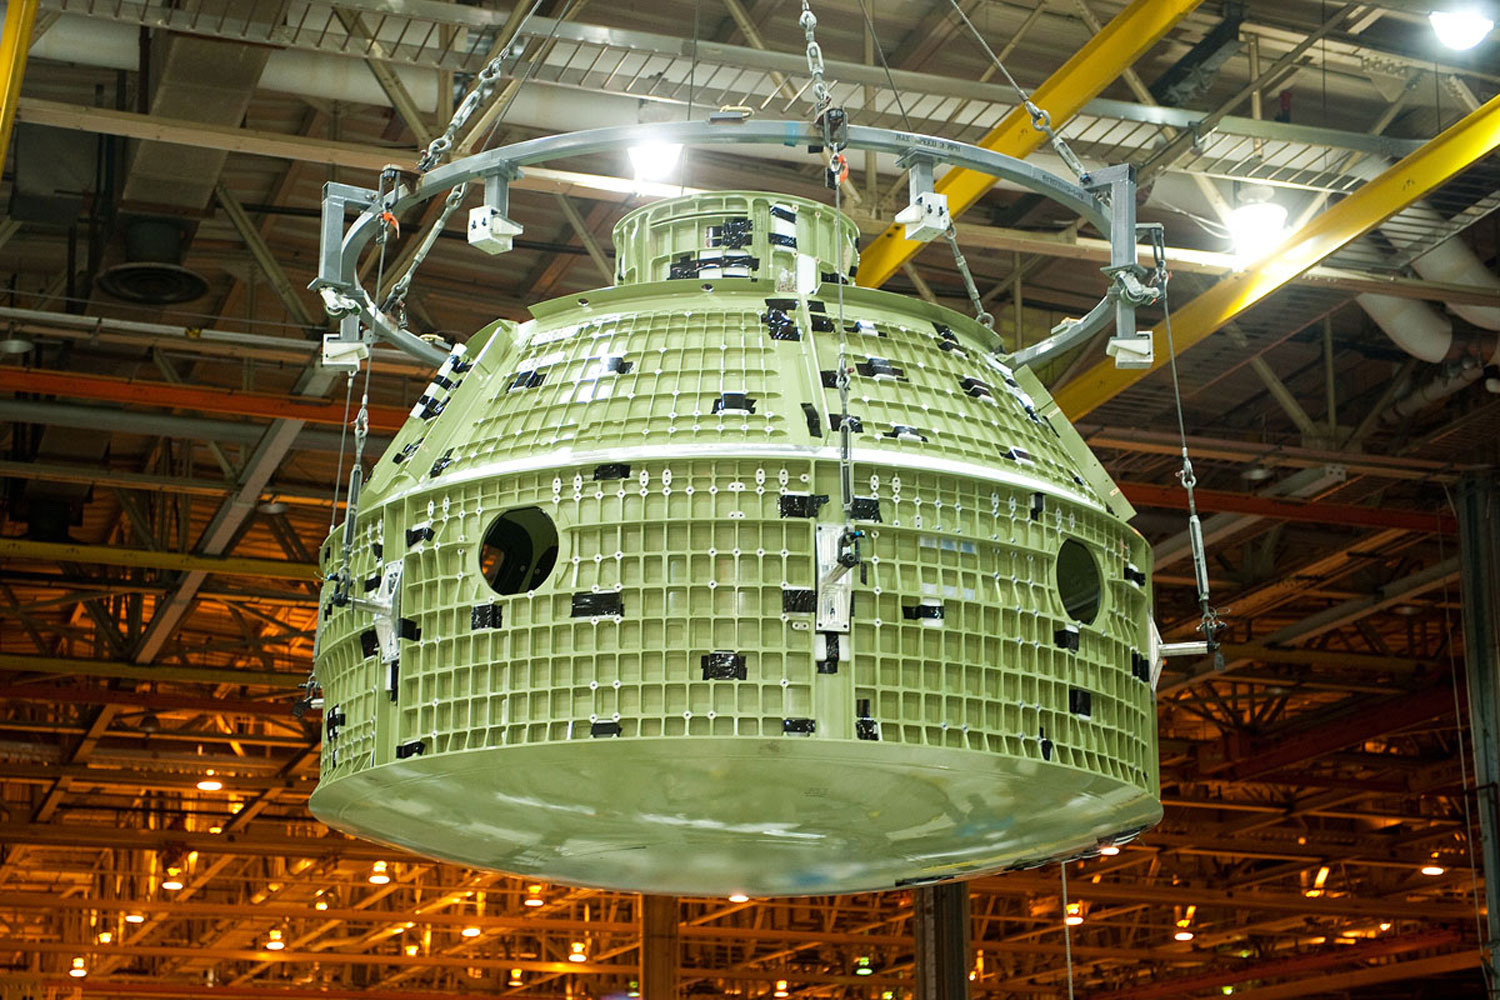 The NASA team at the Michoud Assembly Facility in New Orleans has completed the final weld on the first space-bound Orion capsule, on June 22, 2012. The crew compartment is within this structure, which is then enclosed in the conical exterior.